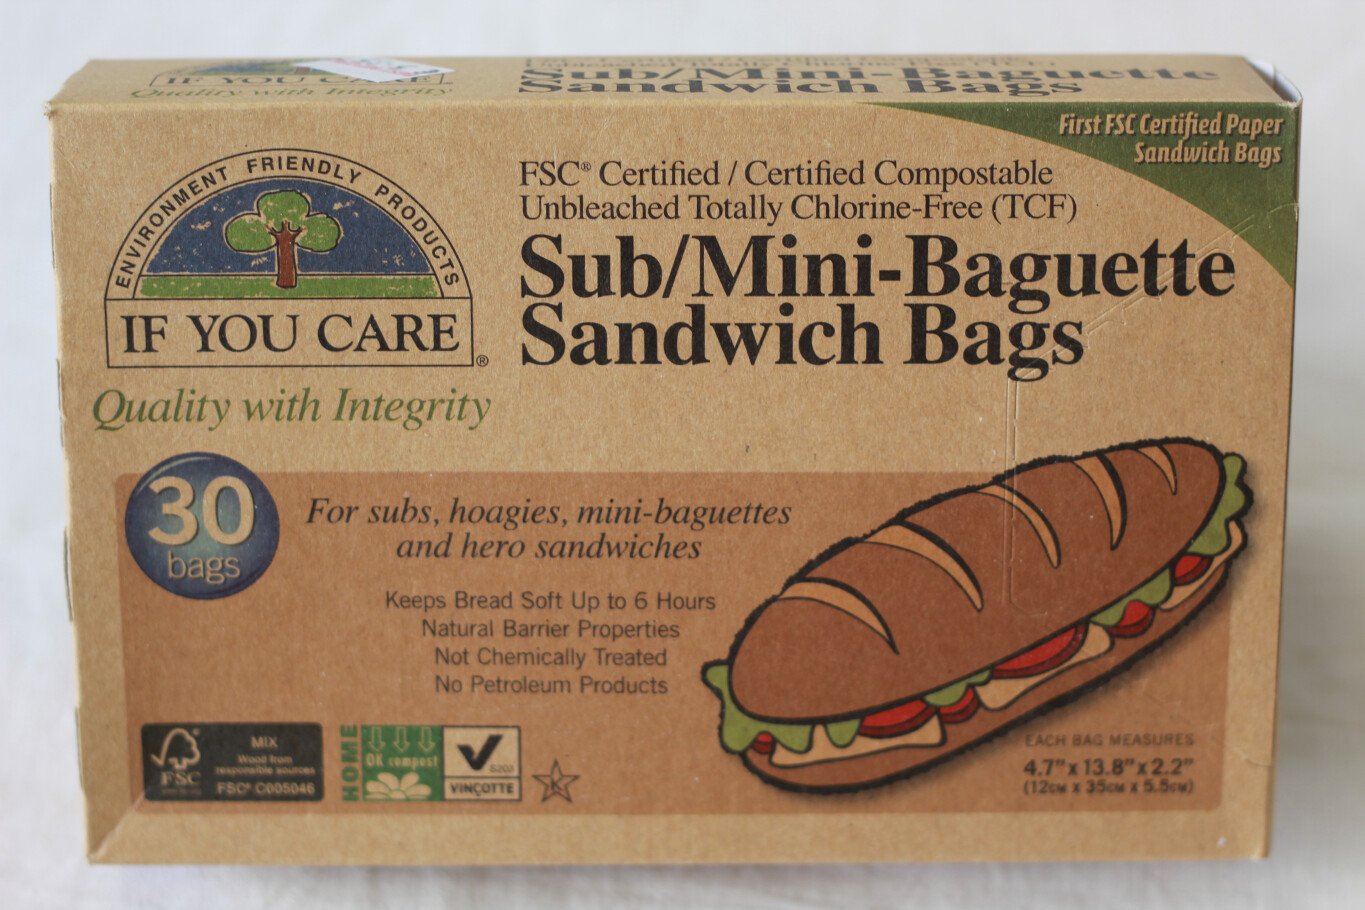 If You Care Sandwich Bags